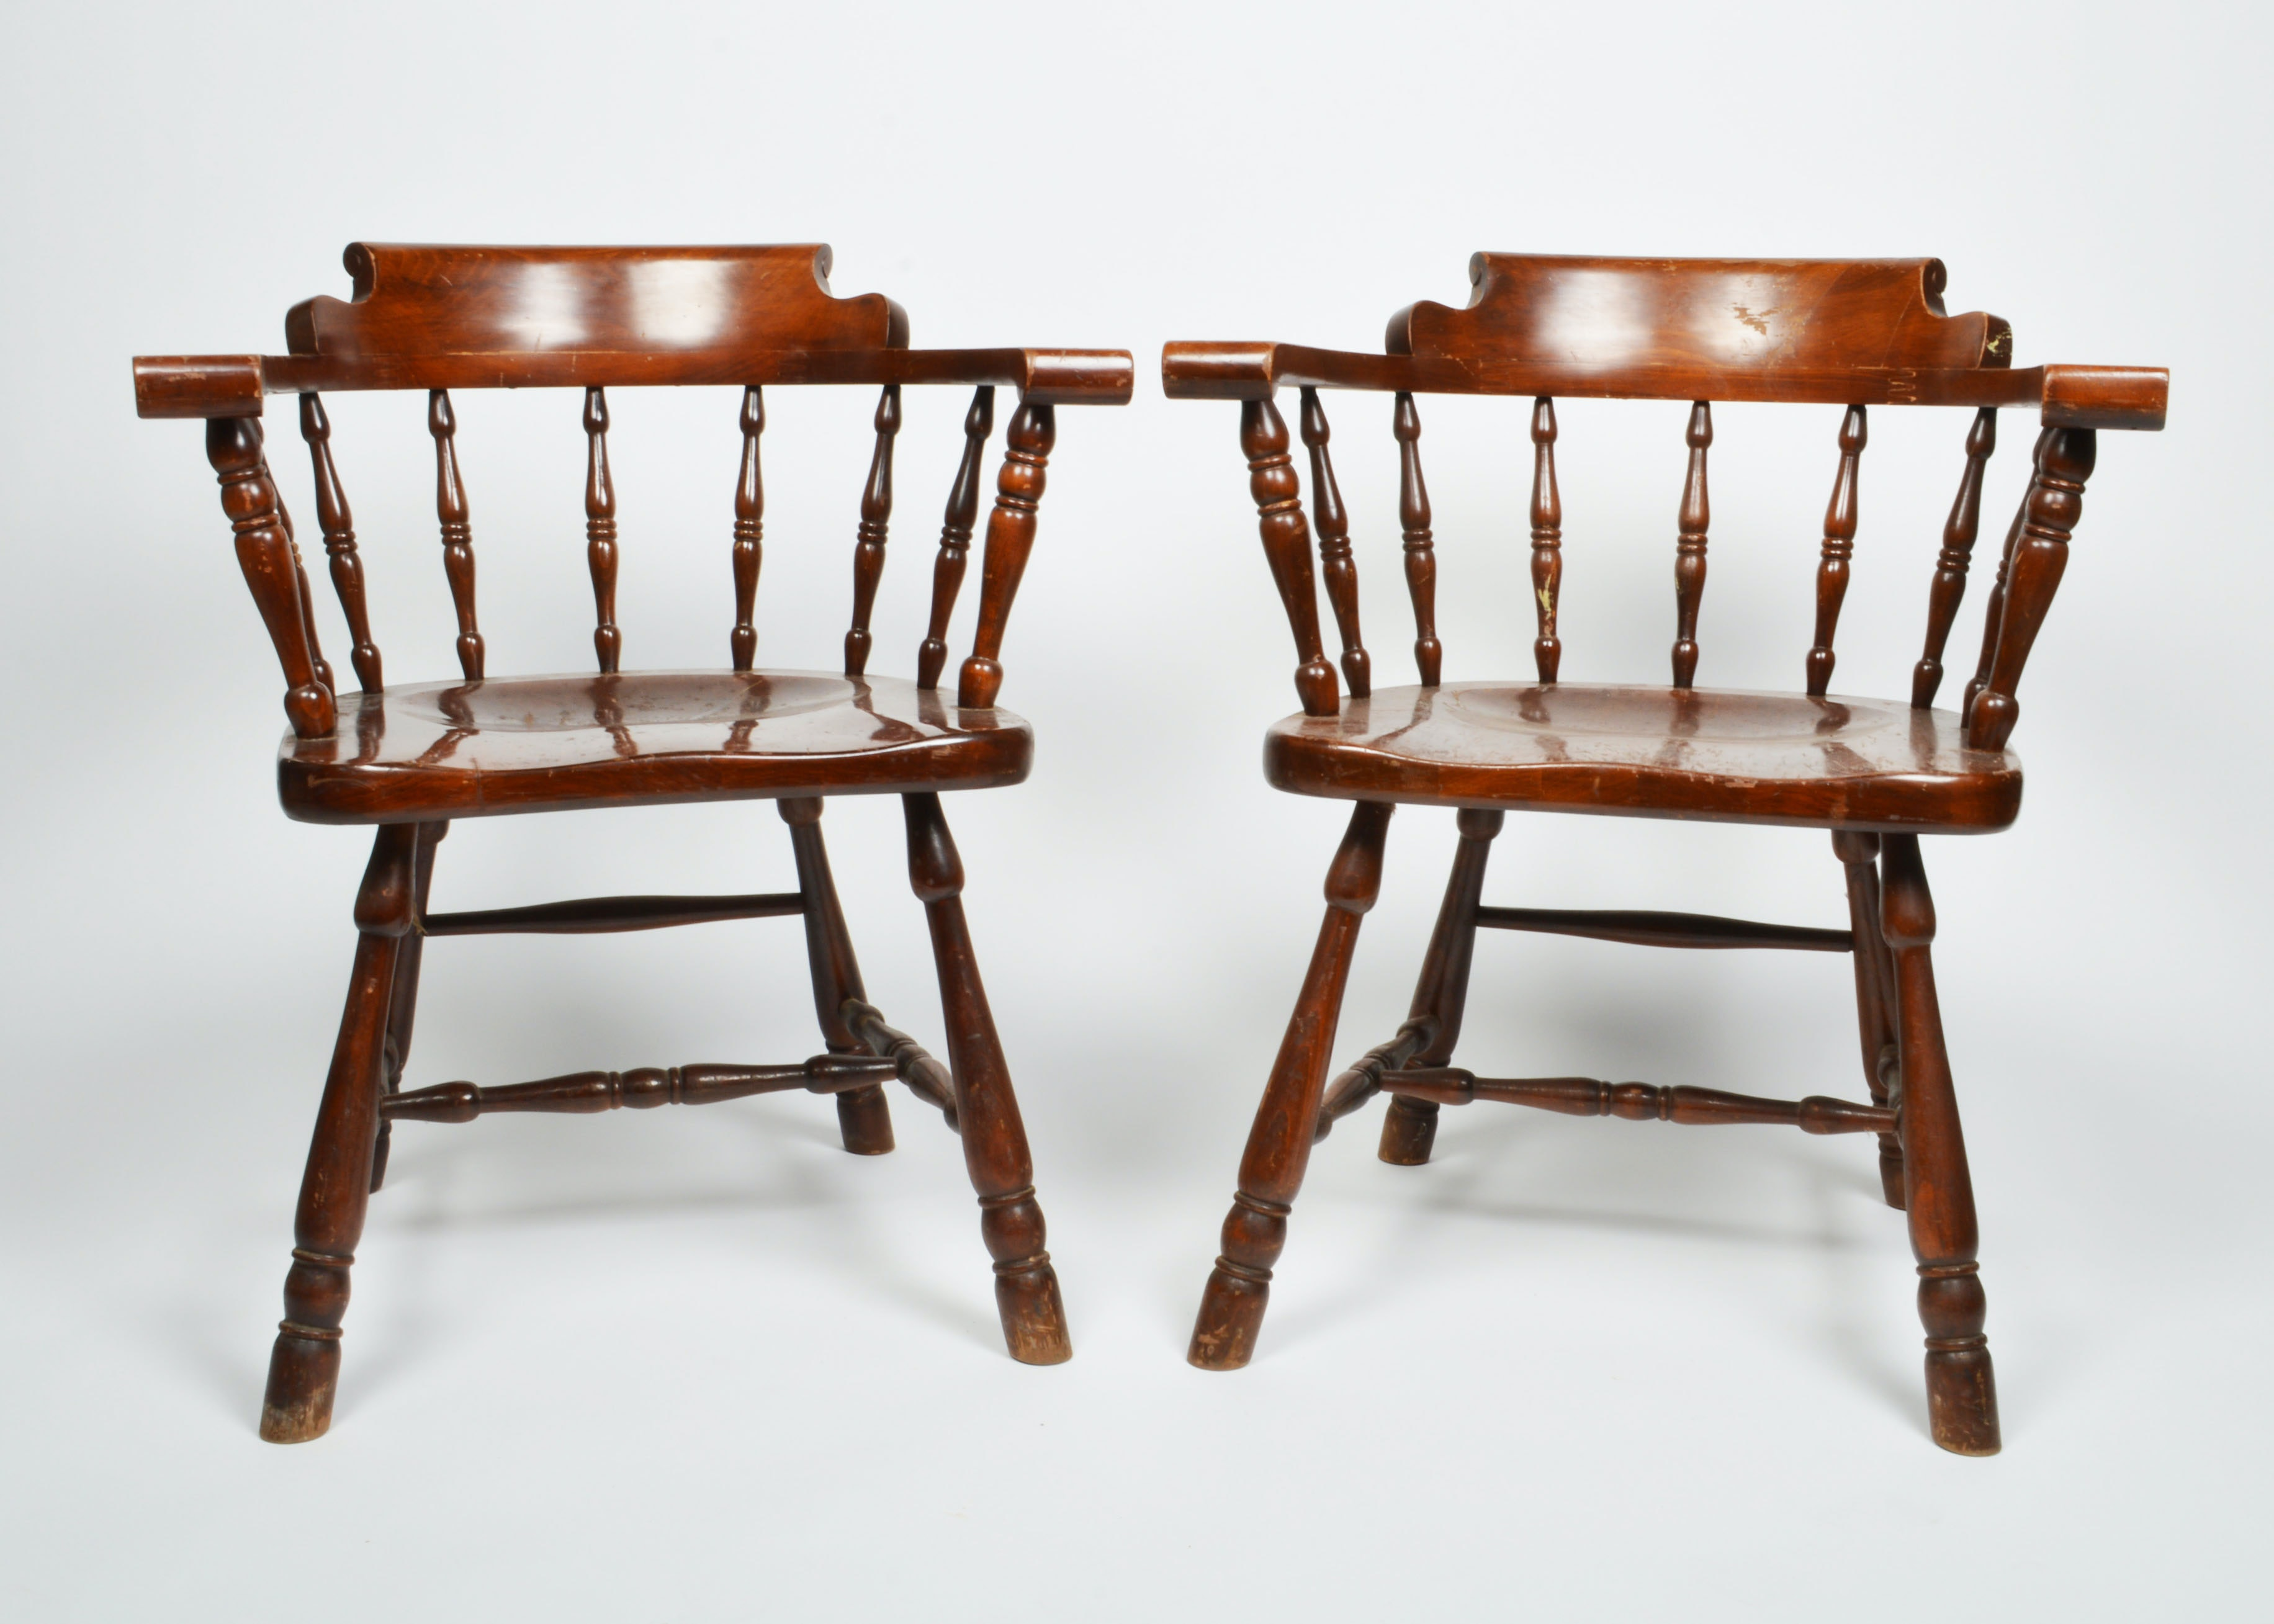 English Barrel Back Spindle Chairs ... & English Barrel Back Spindle Chairs : EBTH